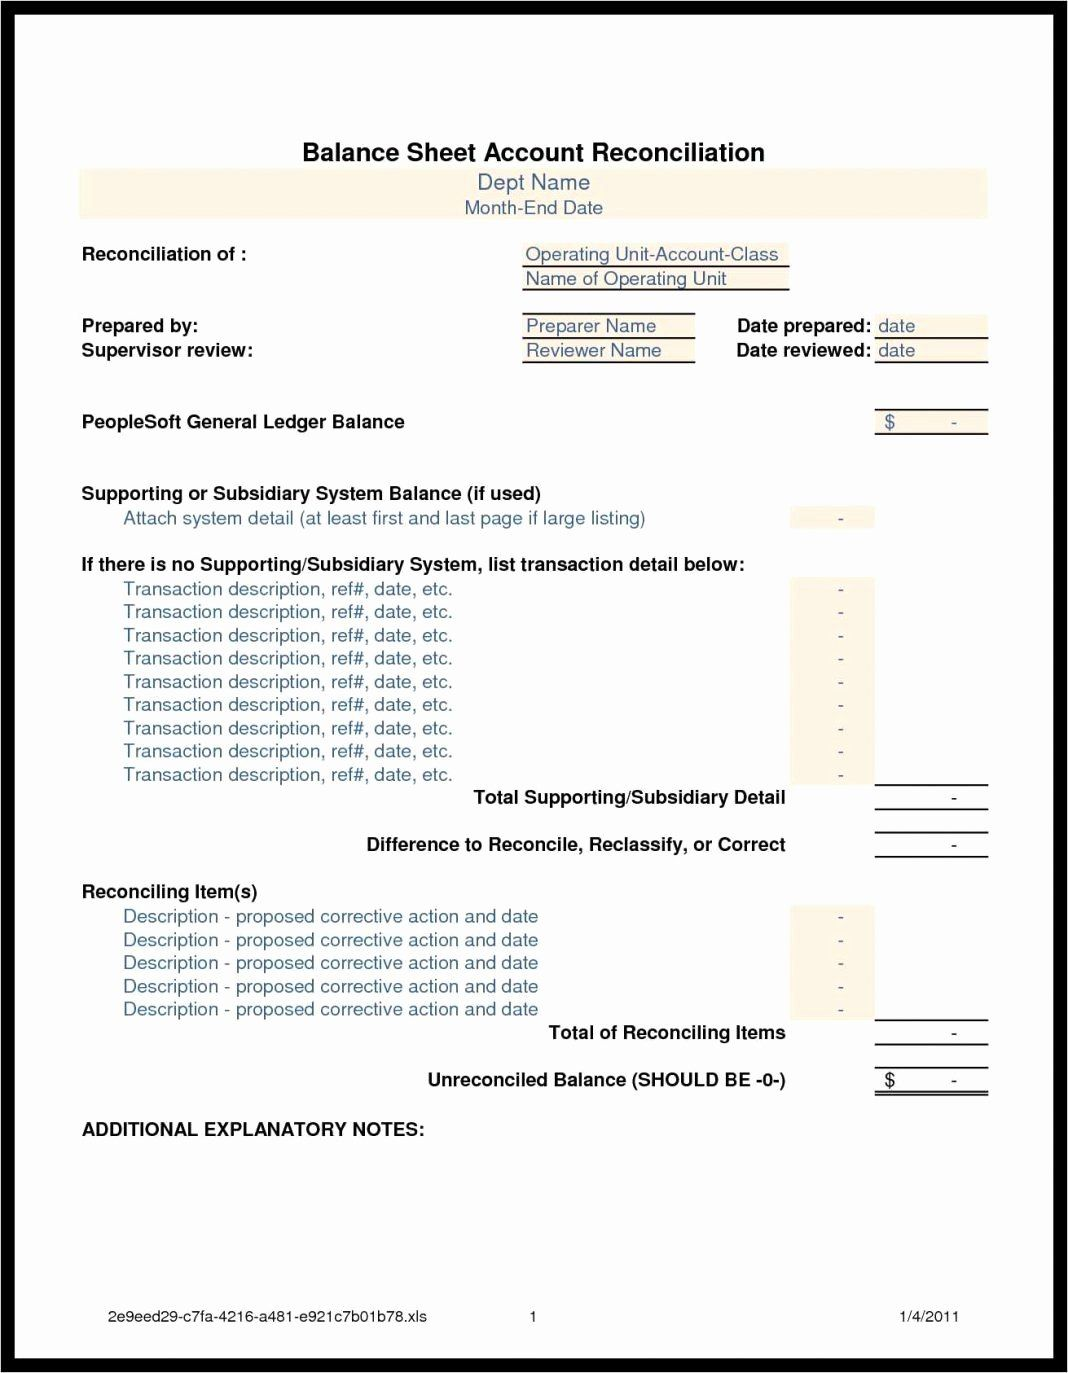 Shipping Label Template Free Awesome Balance Sheet Reconciliation Template Example Spreadsh Balance Sheet Reconciliation Account Reconciliation Label Templates